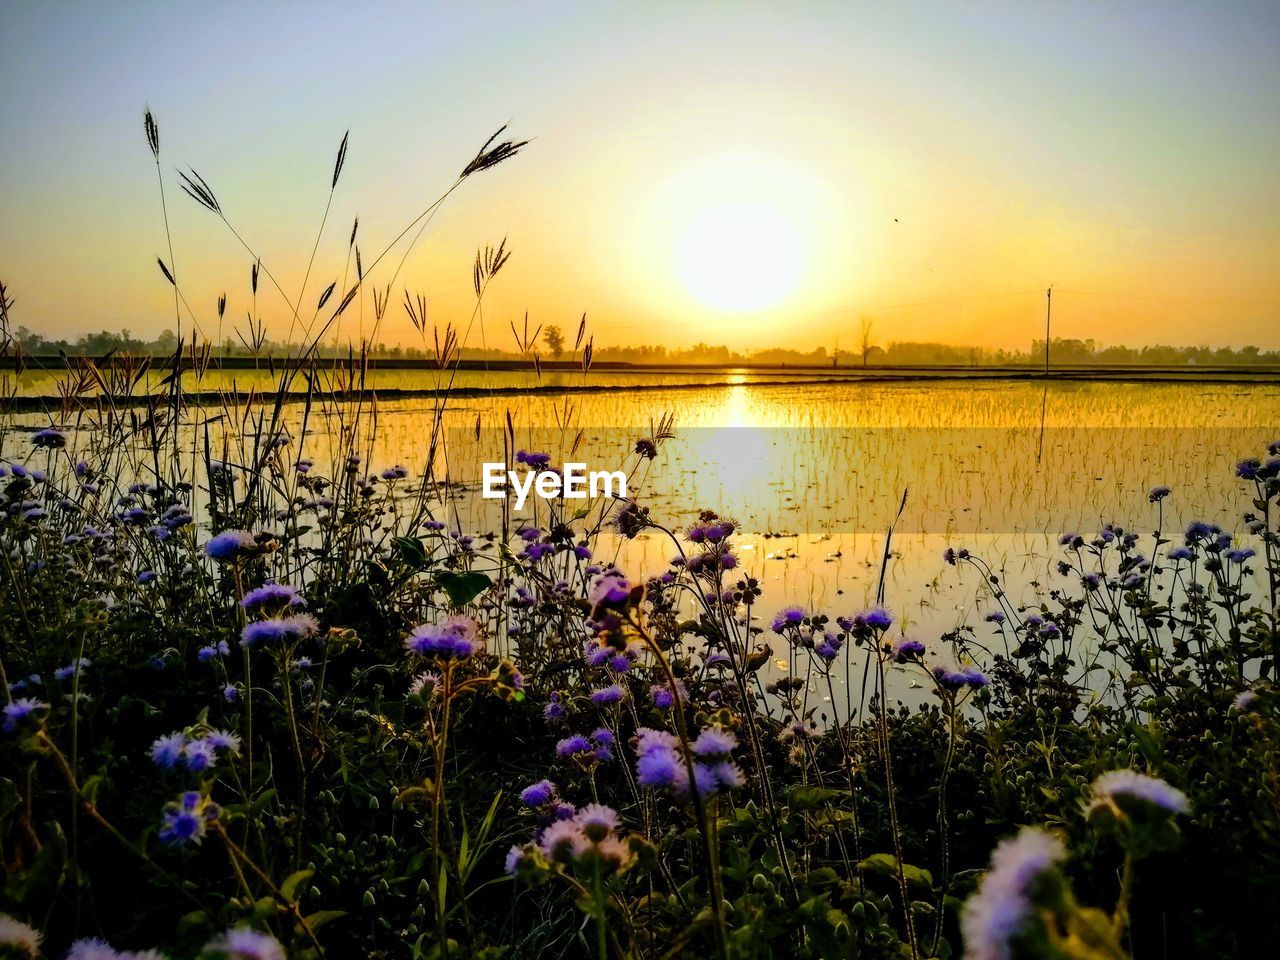 beauty in nature, sunset, sky, plant, flowering plant, flower, sun, scenics - nature, tranquility, tranquil scene, water, nature, growth, lake, no people, freshness, fragility, vulnerability, sunlight, outdoors